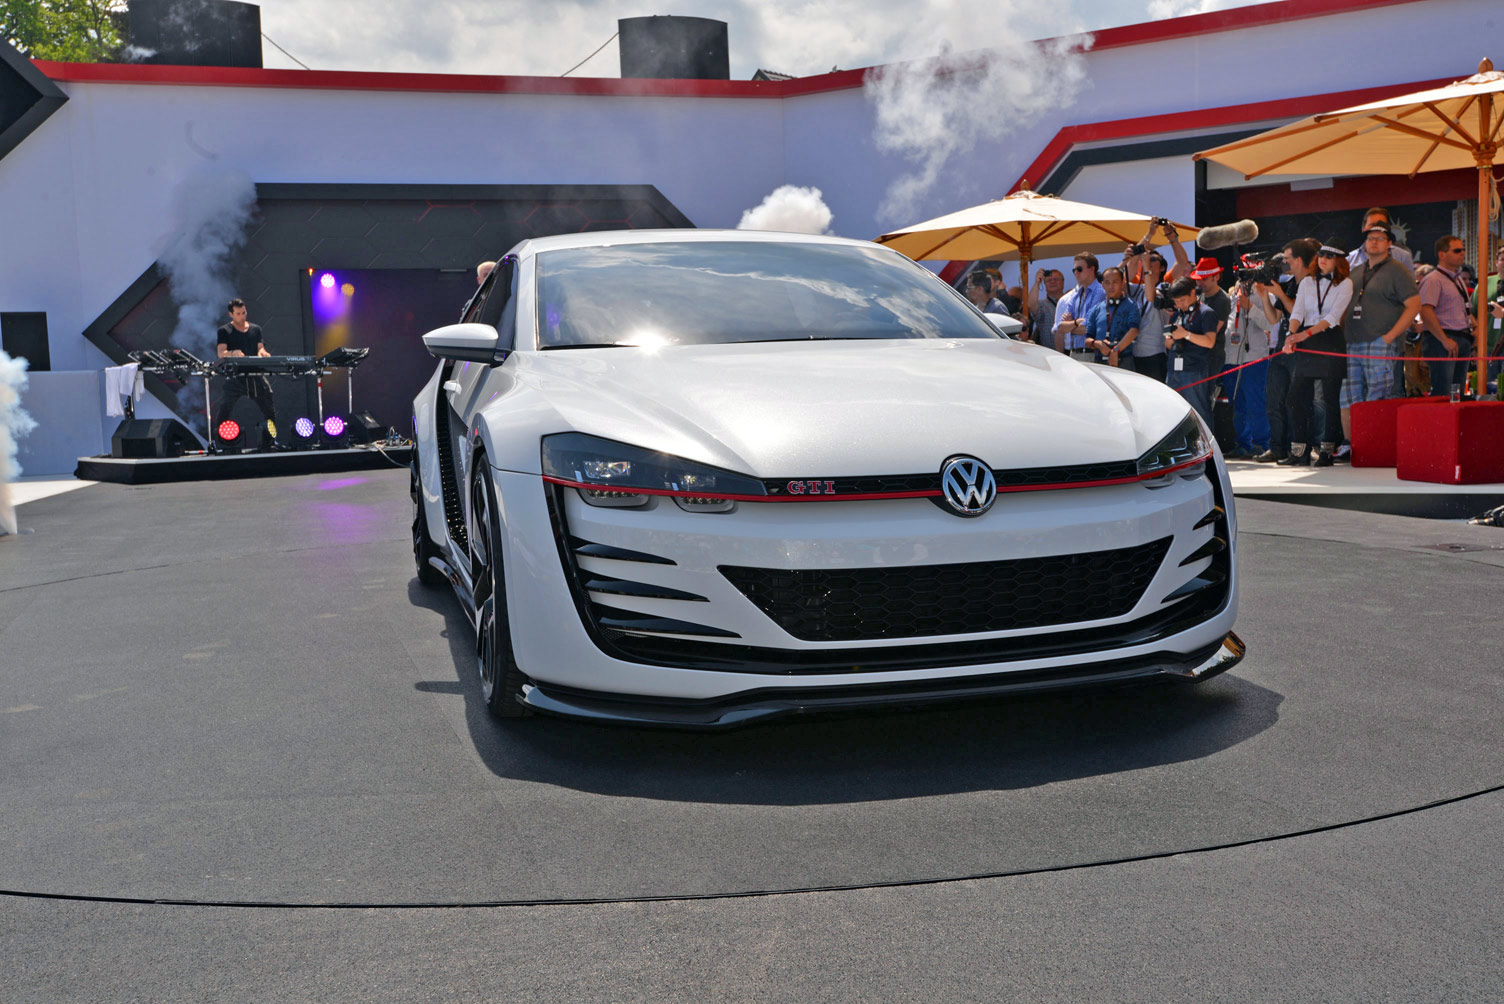 volkswagen-design-vision-gti-worthersee-016